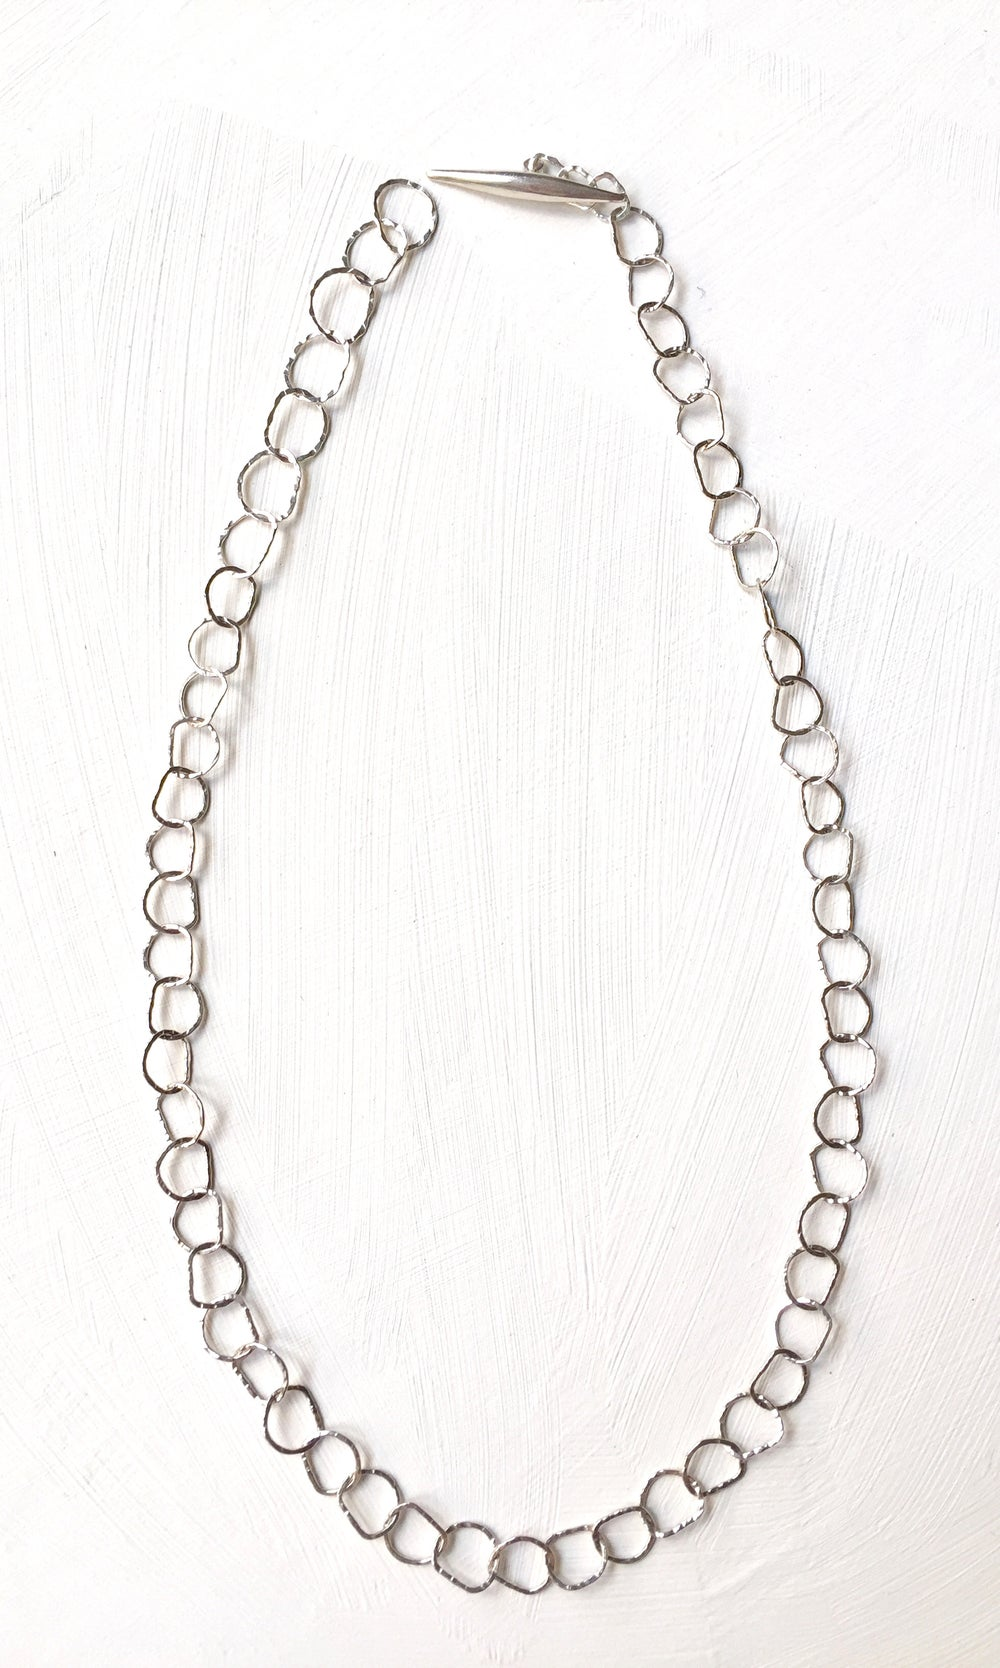 Image of Afiok necklace single length -sterling silver